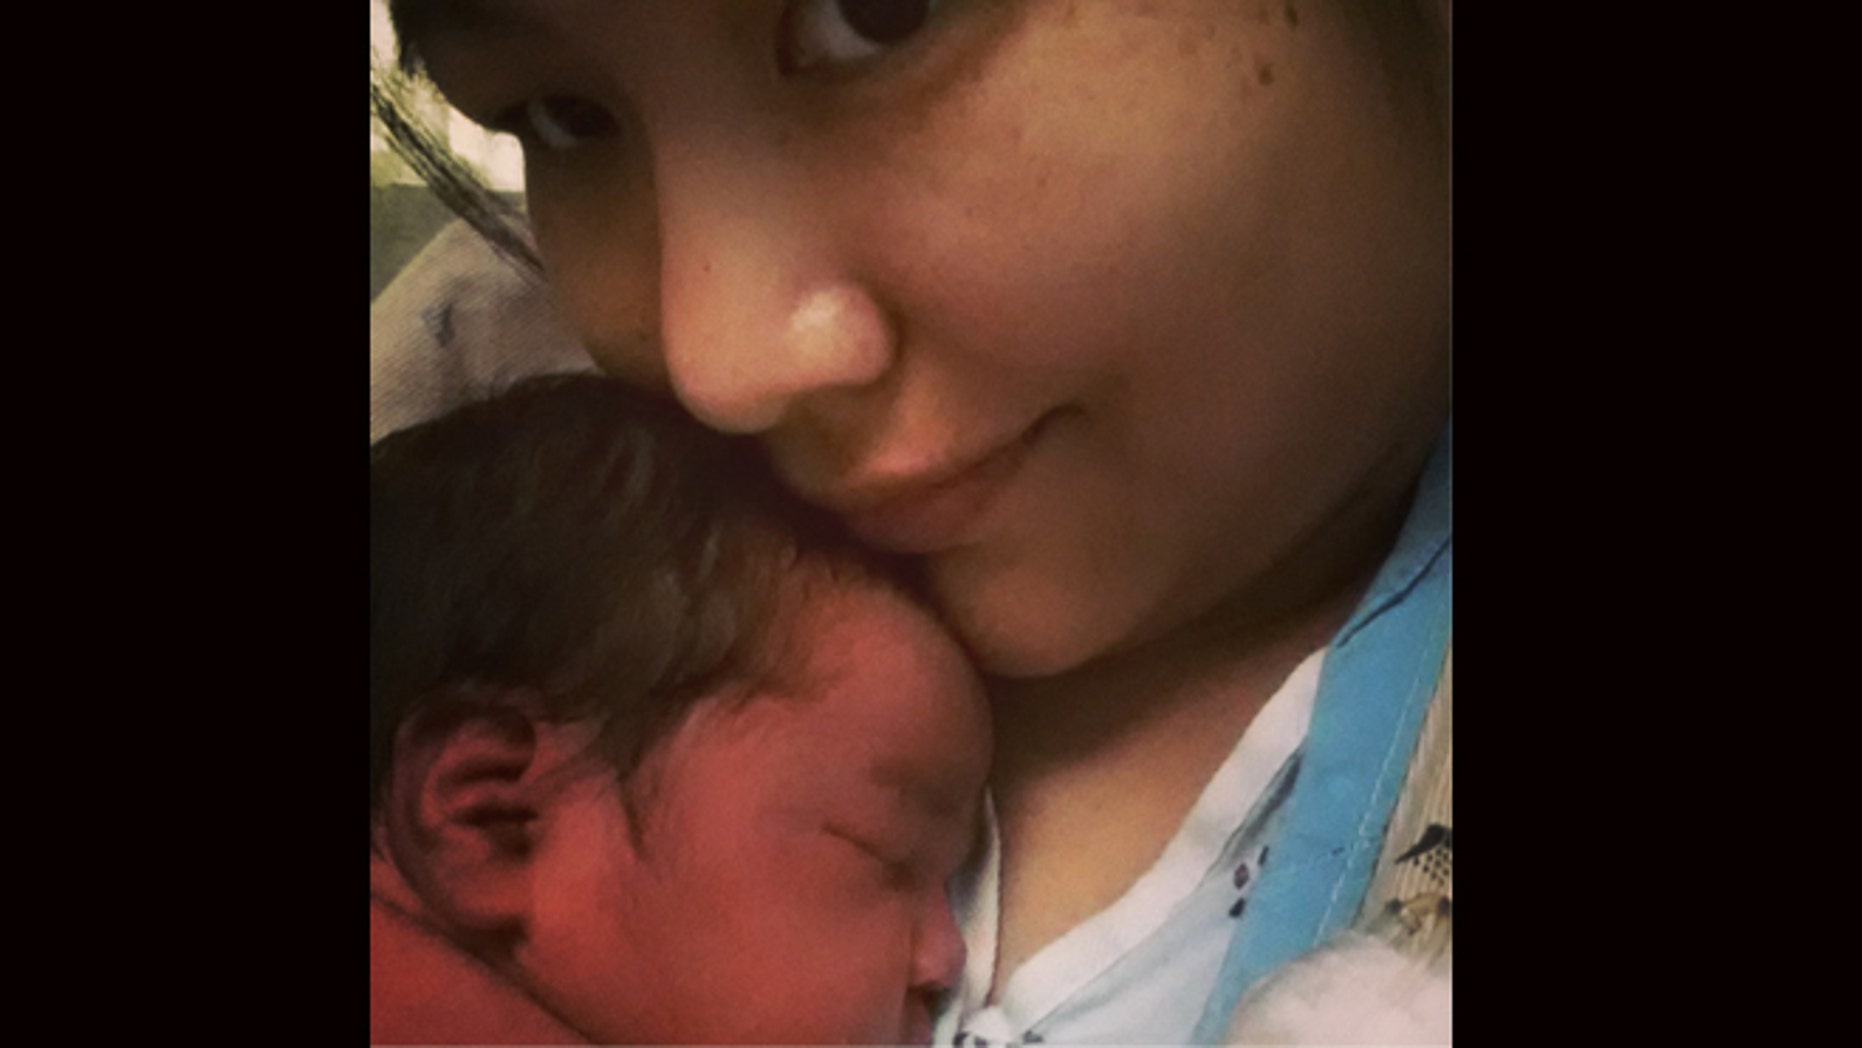 This undated cell phone picture provided by Trish Staine shows Staine, right, with her newborn baby, in Duluth, Minn. Staine, a 33-year-old aspiring half-marathon runner, says she had no idea she was pregnant before giving birth Monday, June 5, 2013. (AP Photo/Patricia Staine)